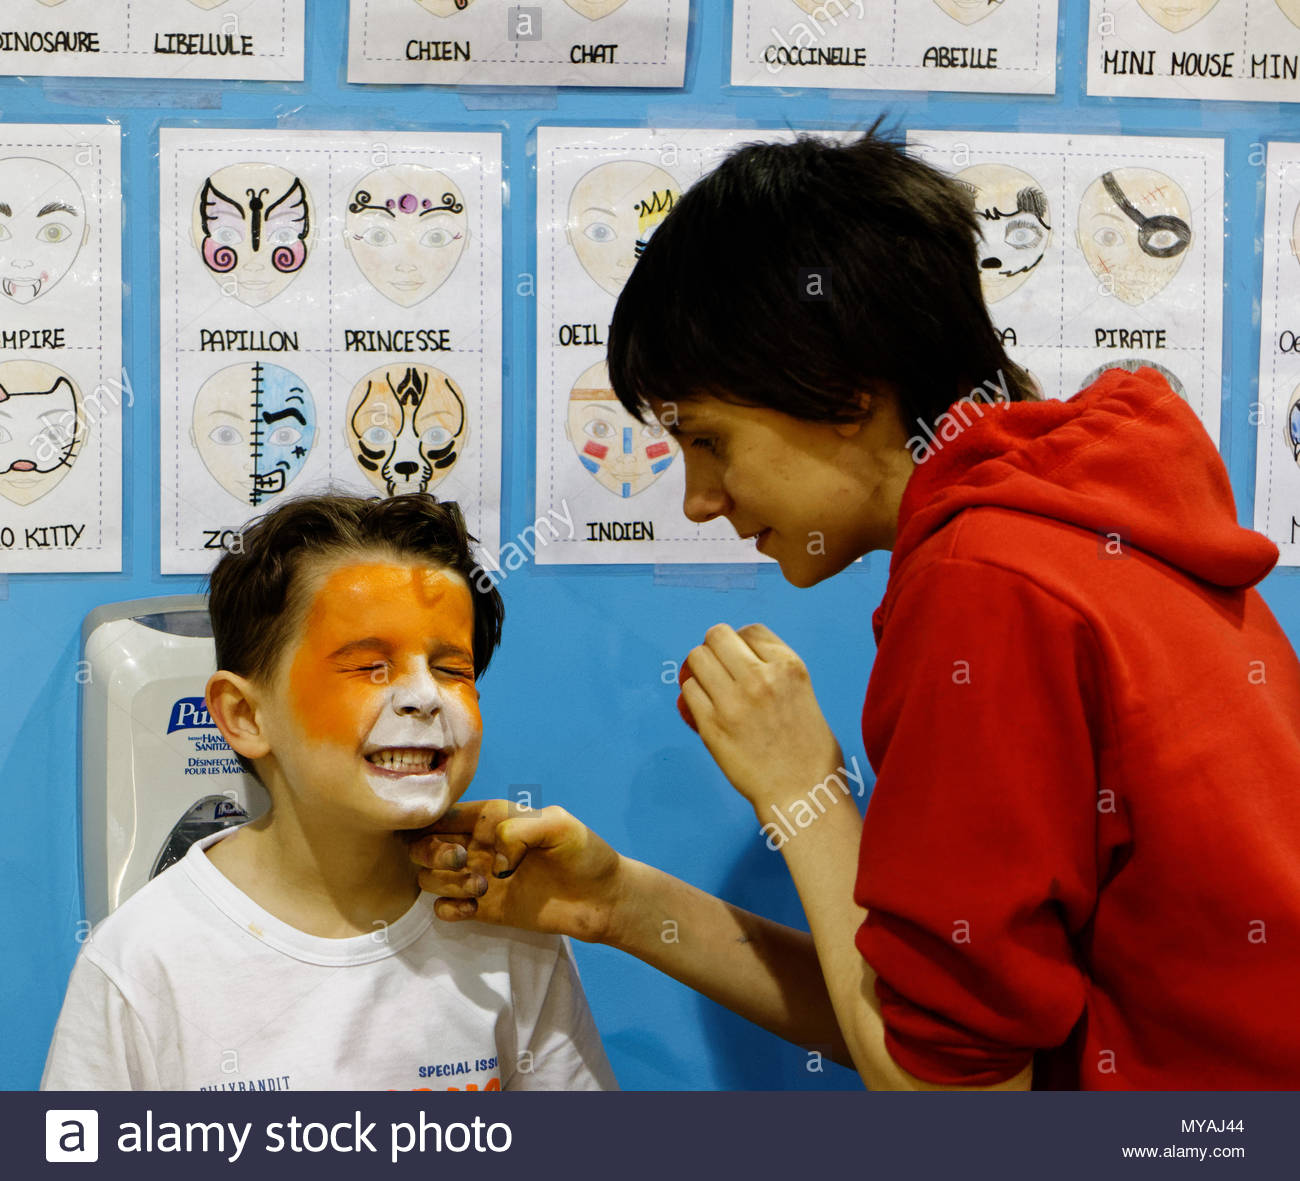 a-young-boy-6-yr-old-grimaces-while-being-face-painted-MYAJ44.jpg